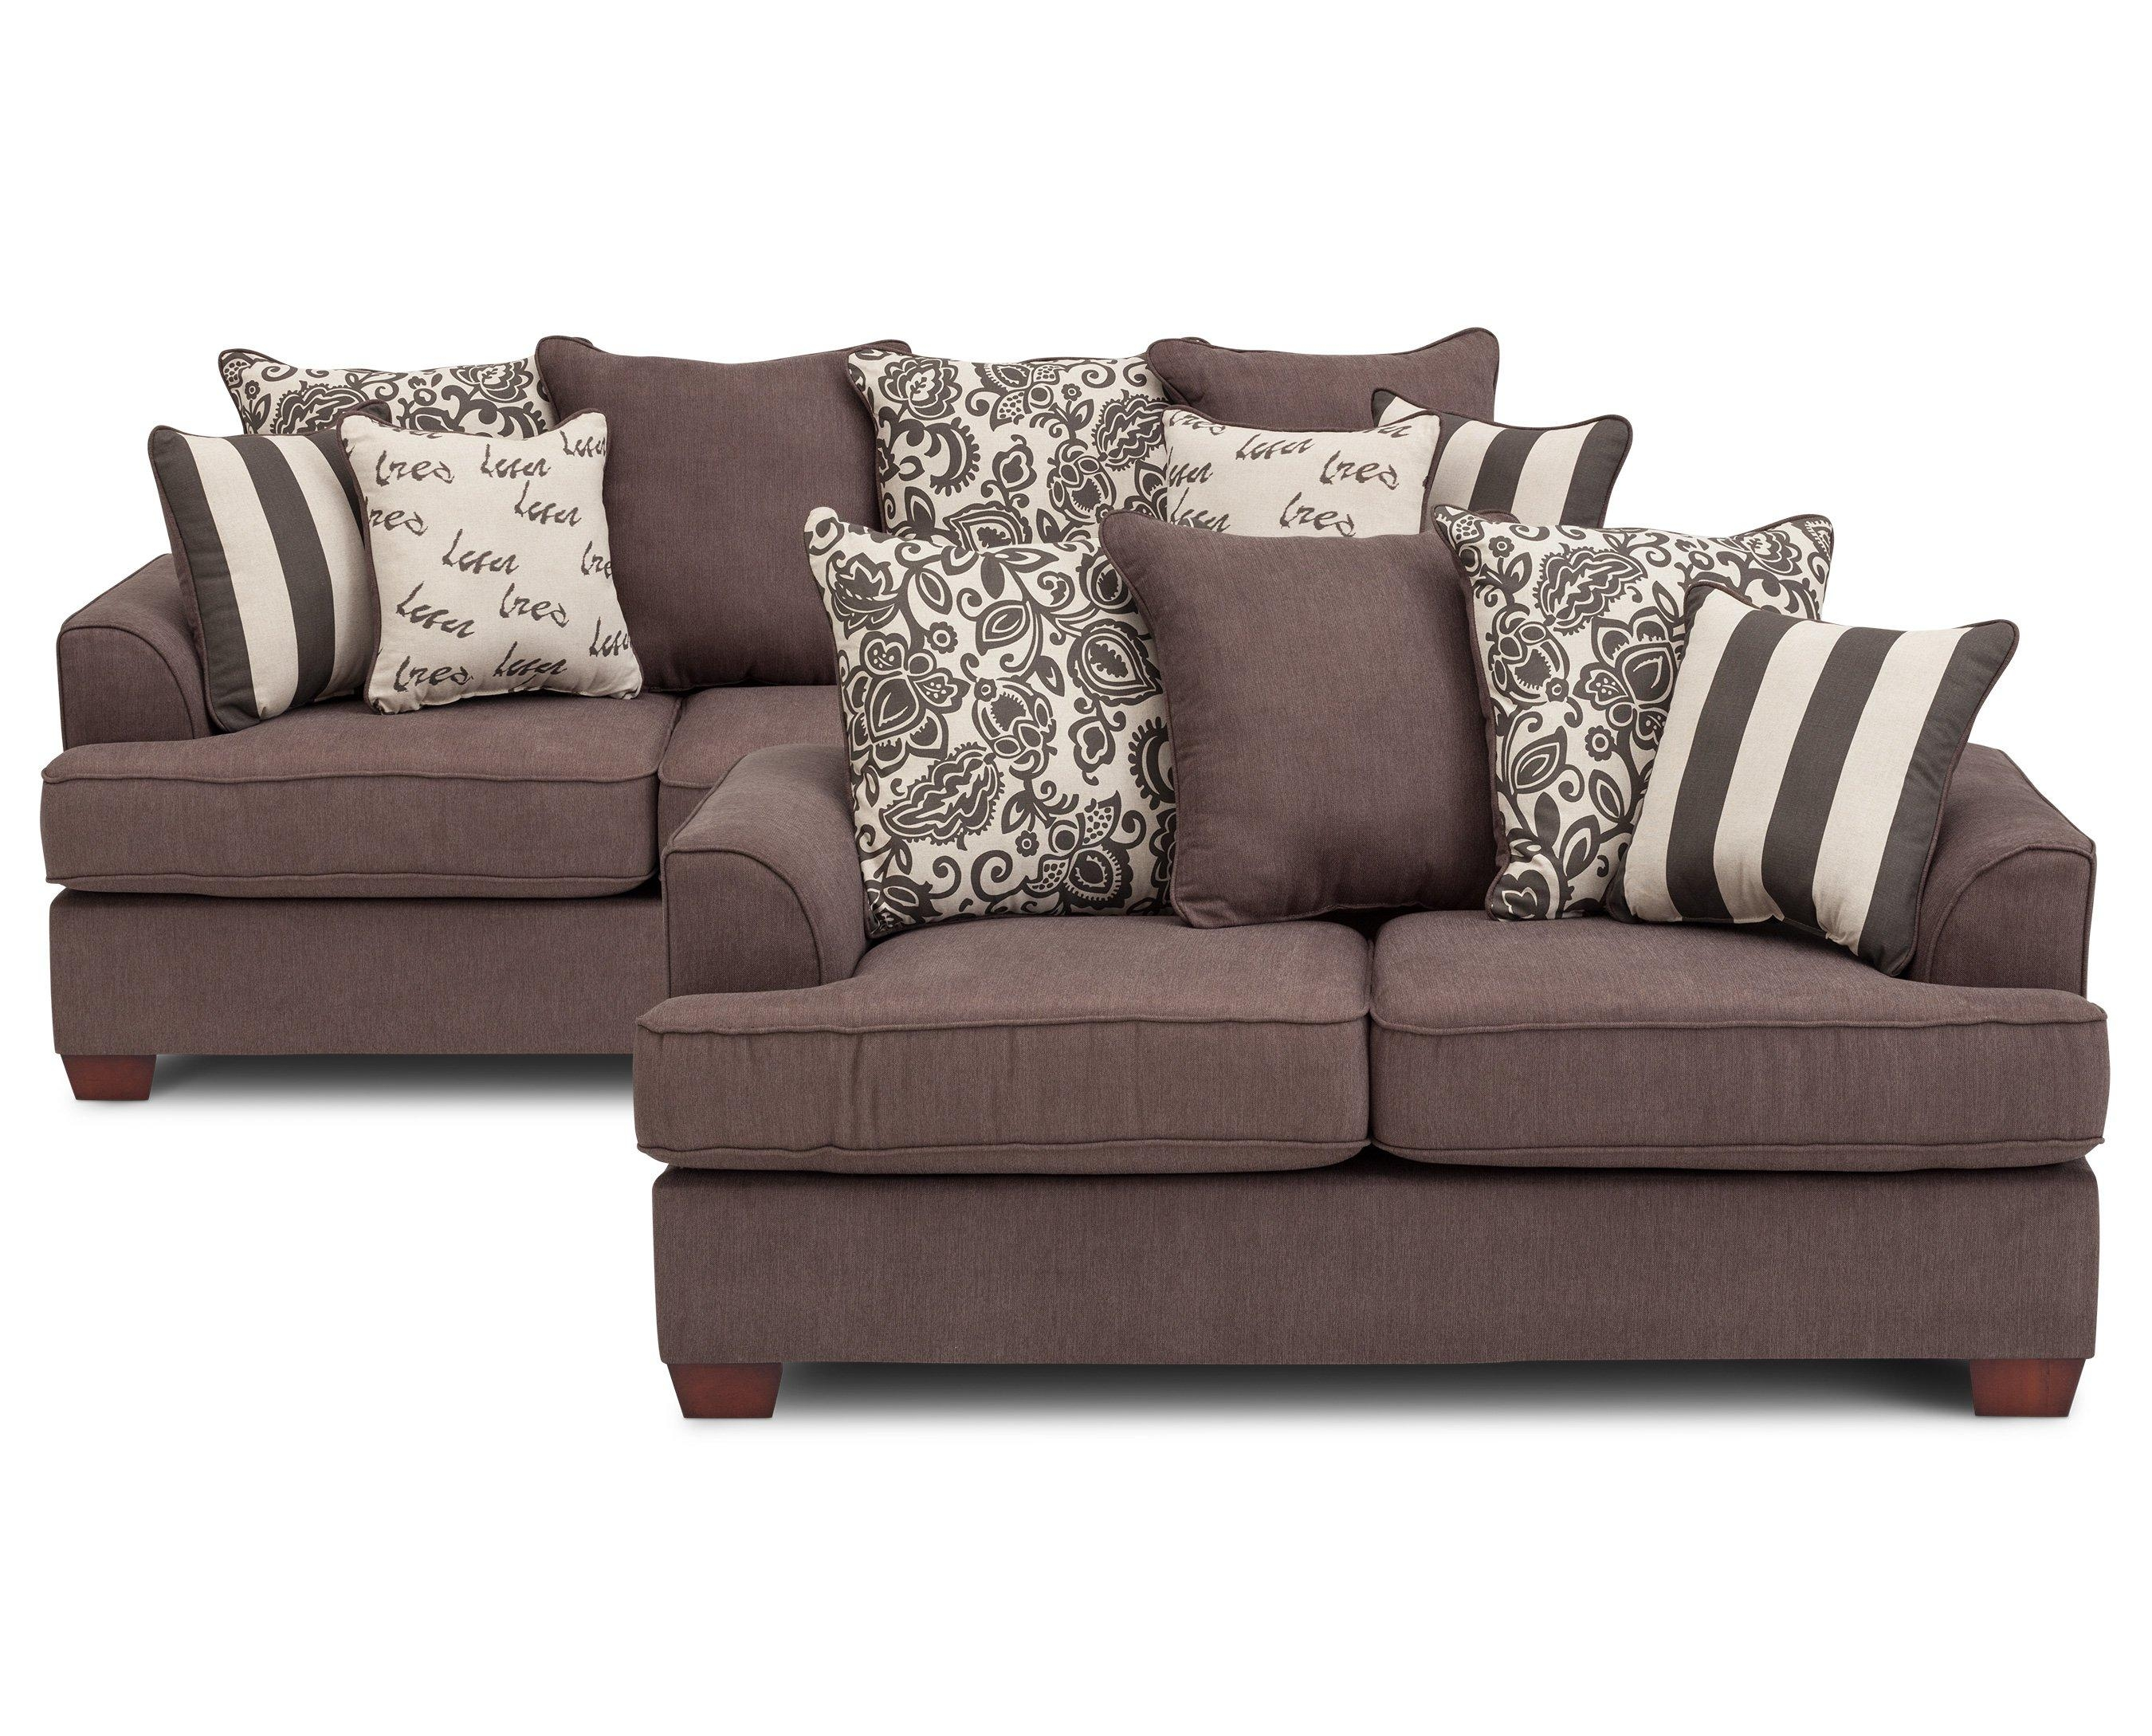 Alan White Sofa With Concept Photo 6312 | Kengire Regarding Alan White Sofas (View 8 of 20)